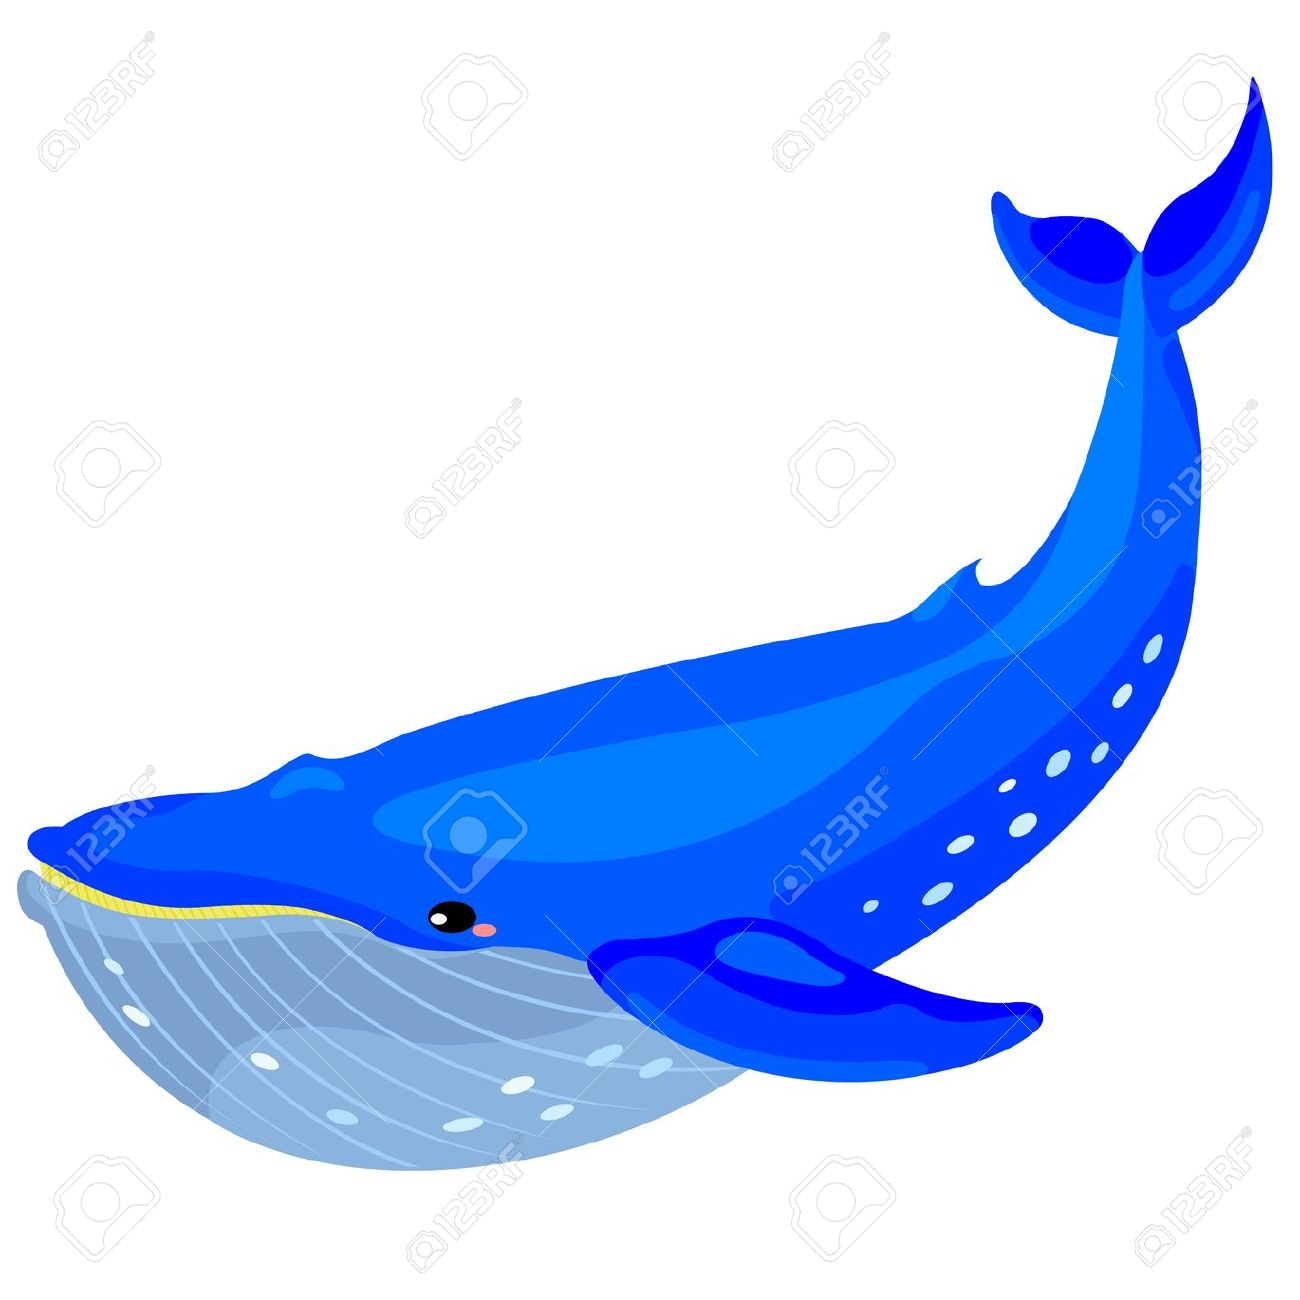 whale clipart at getdrawings com free for personal use whale rh getdrawings com humpback whale clipart black and white